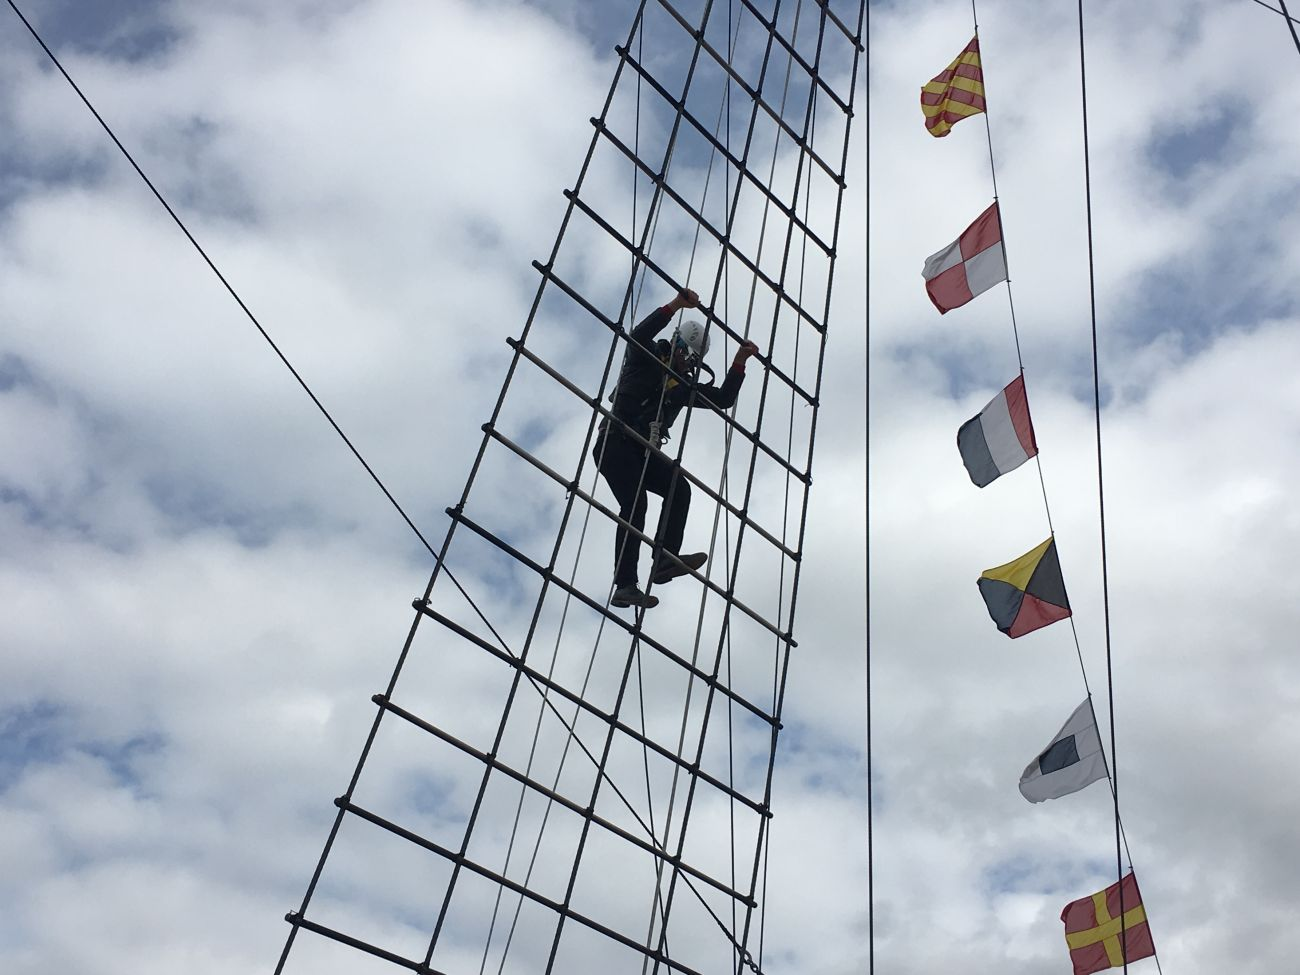 'Go Aloft' at SS Great Britain